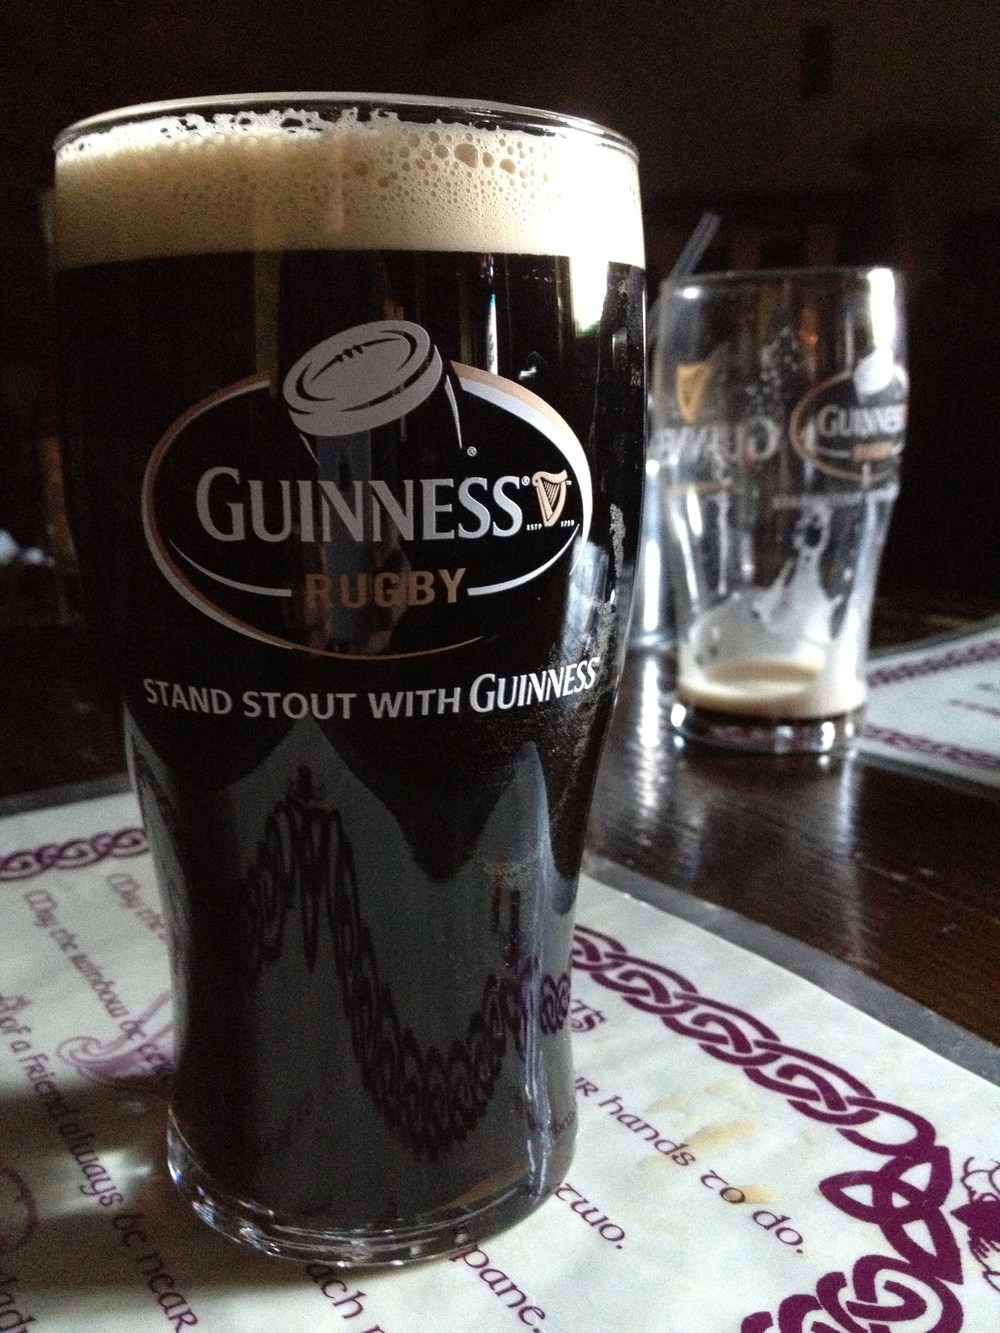 Stout and rugby